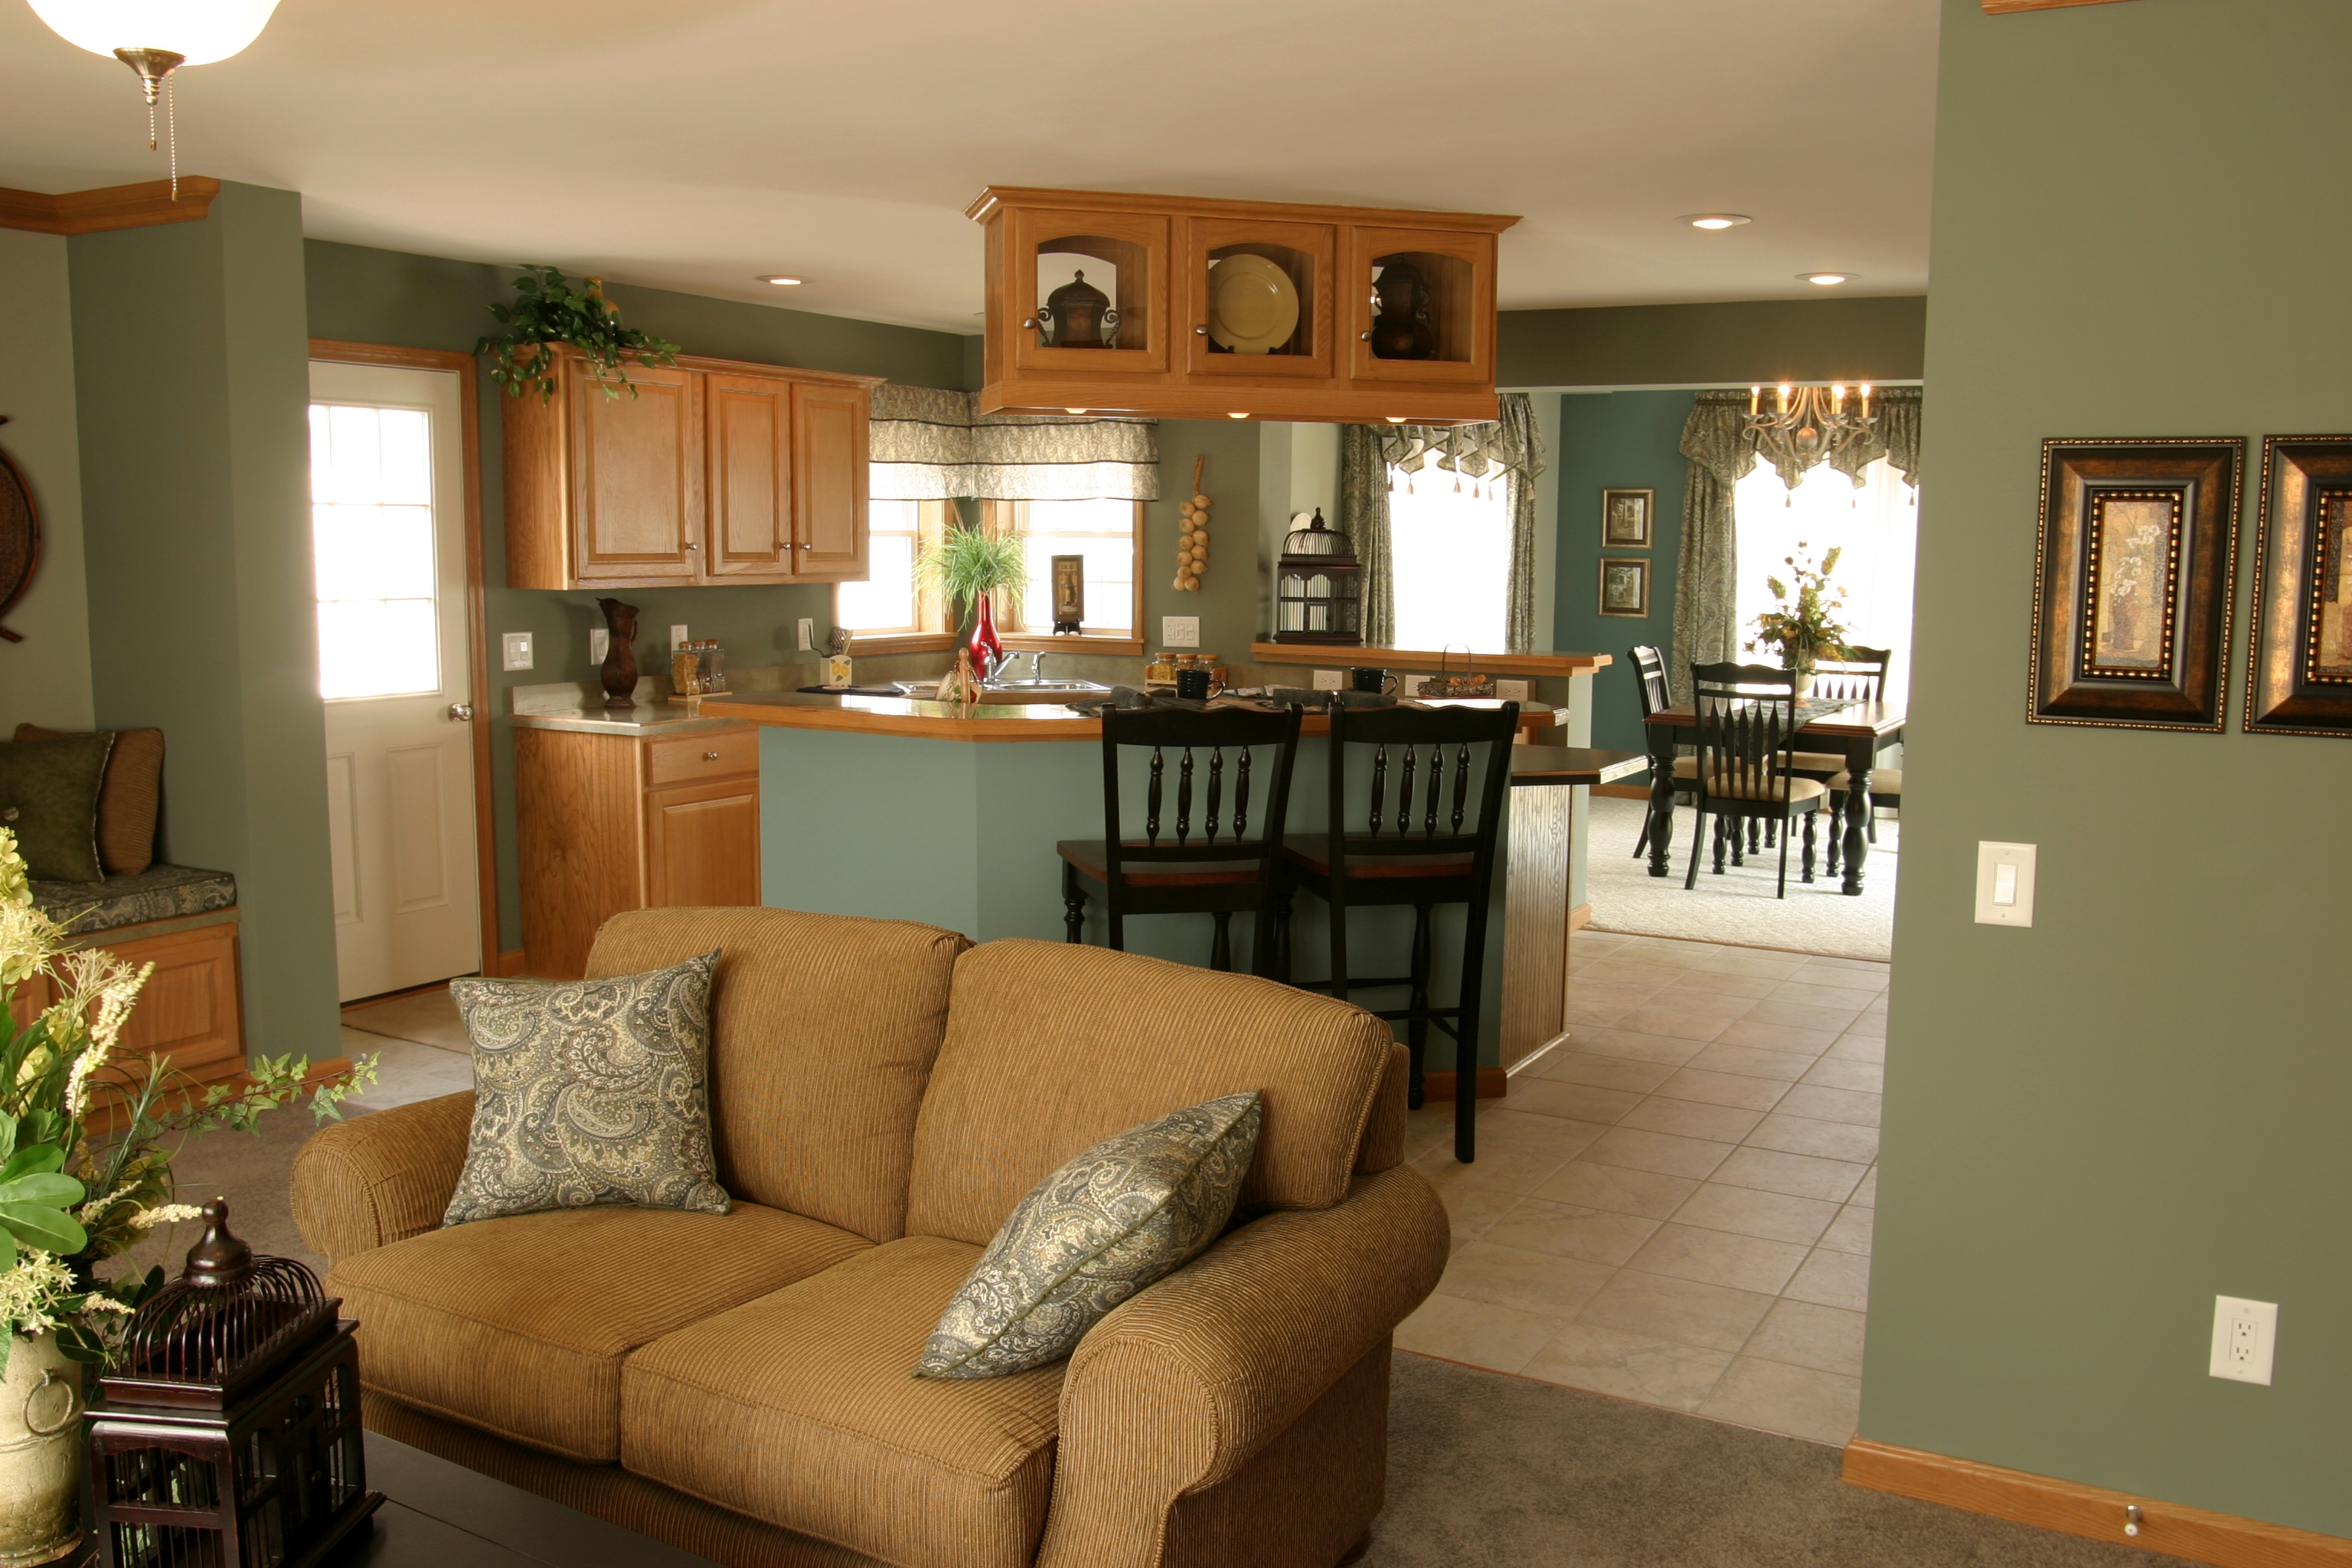 gallery for gt manufactured homes interior